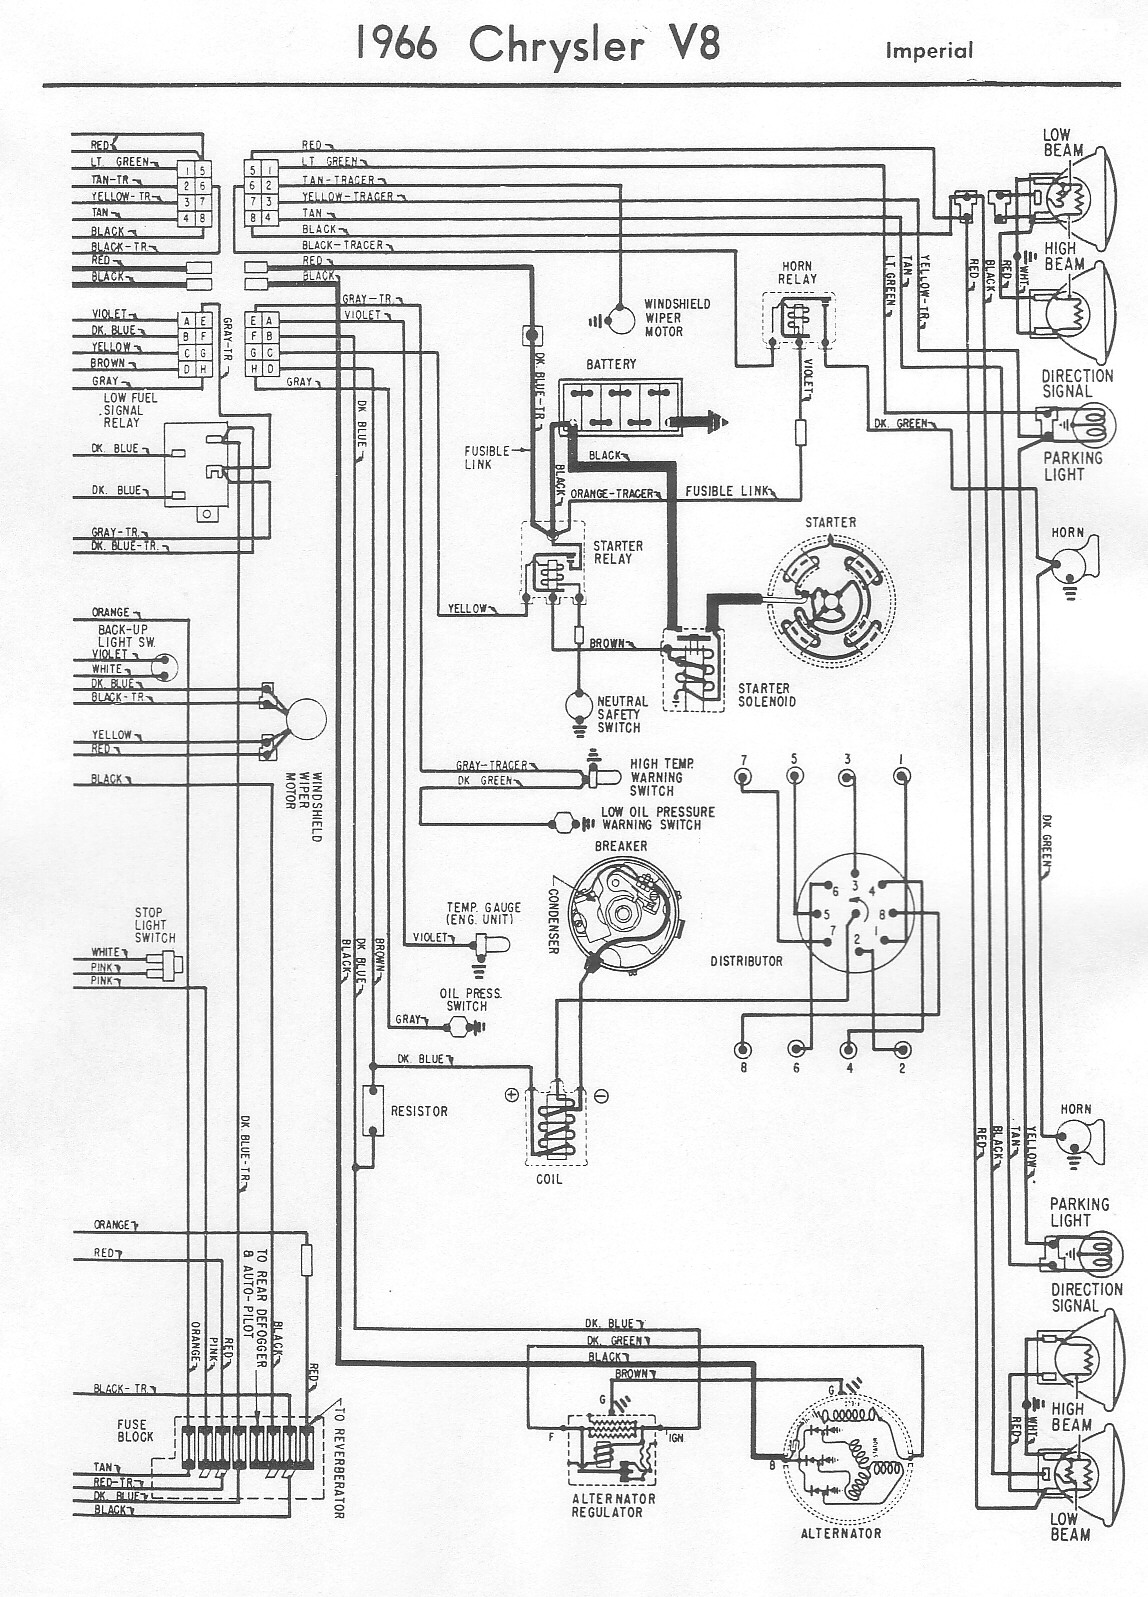 Electrical Schematic Free Best Secret Wiring Diagram House Simulator Download Diagrams Pictures Auto Simulation Software